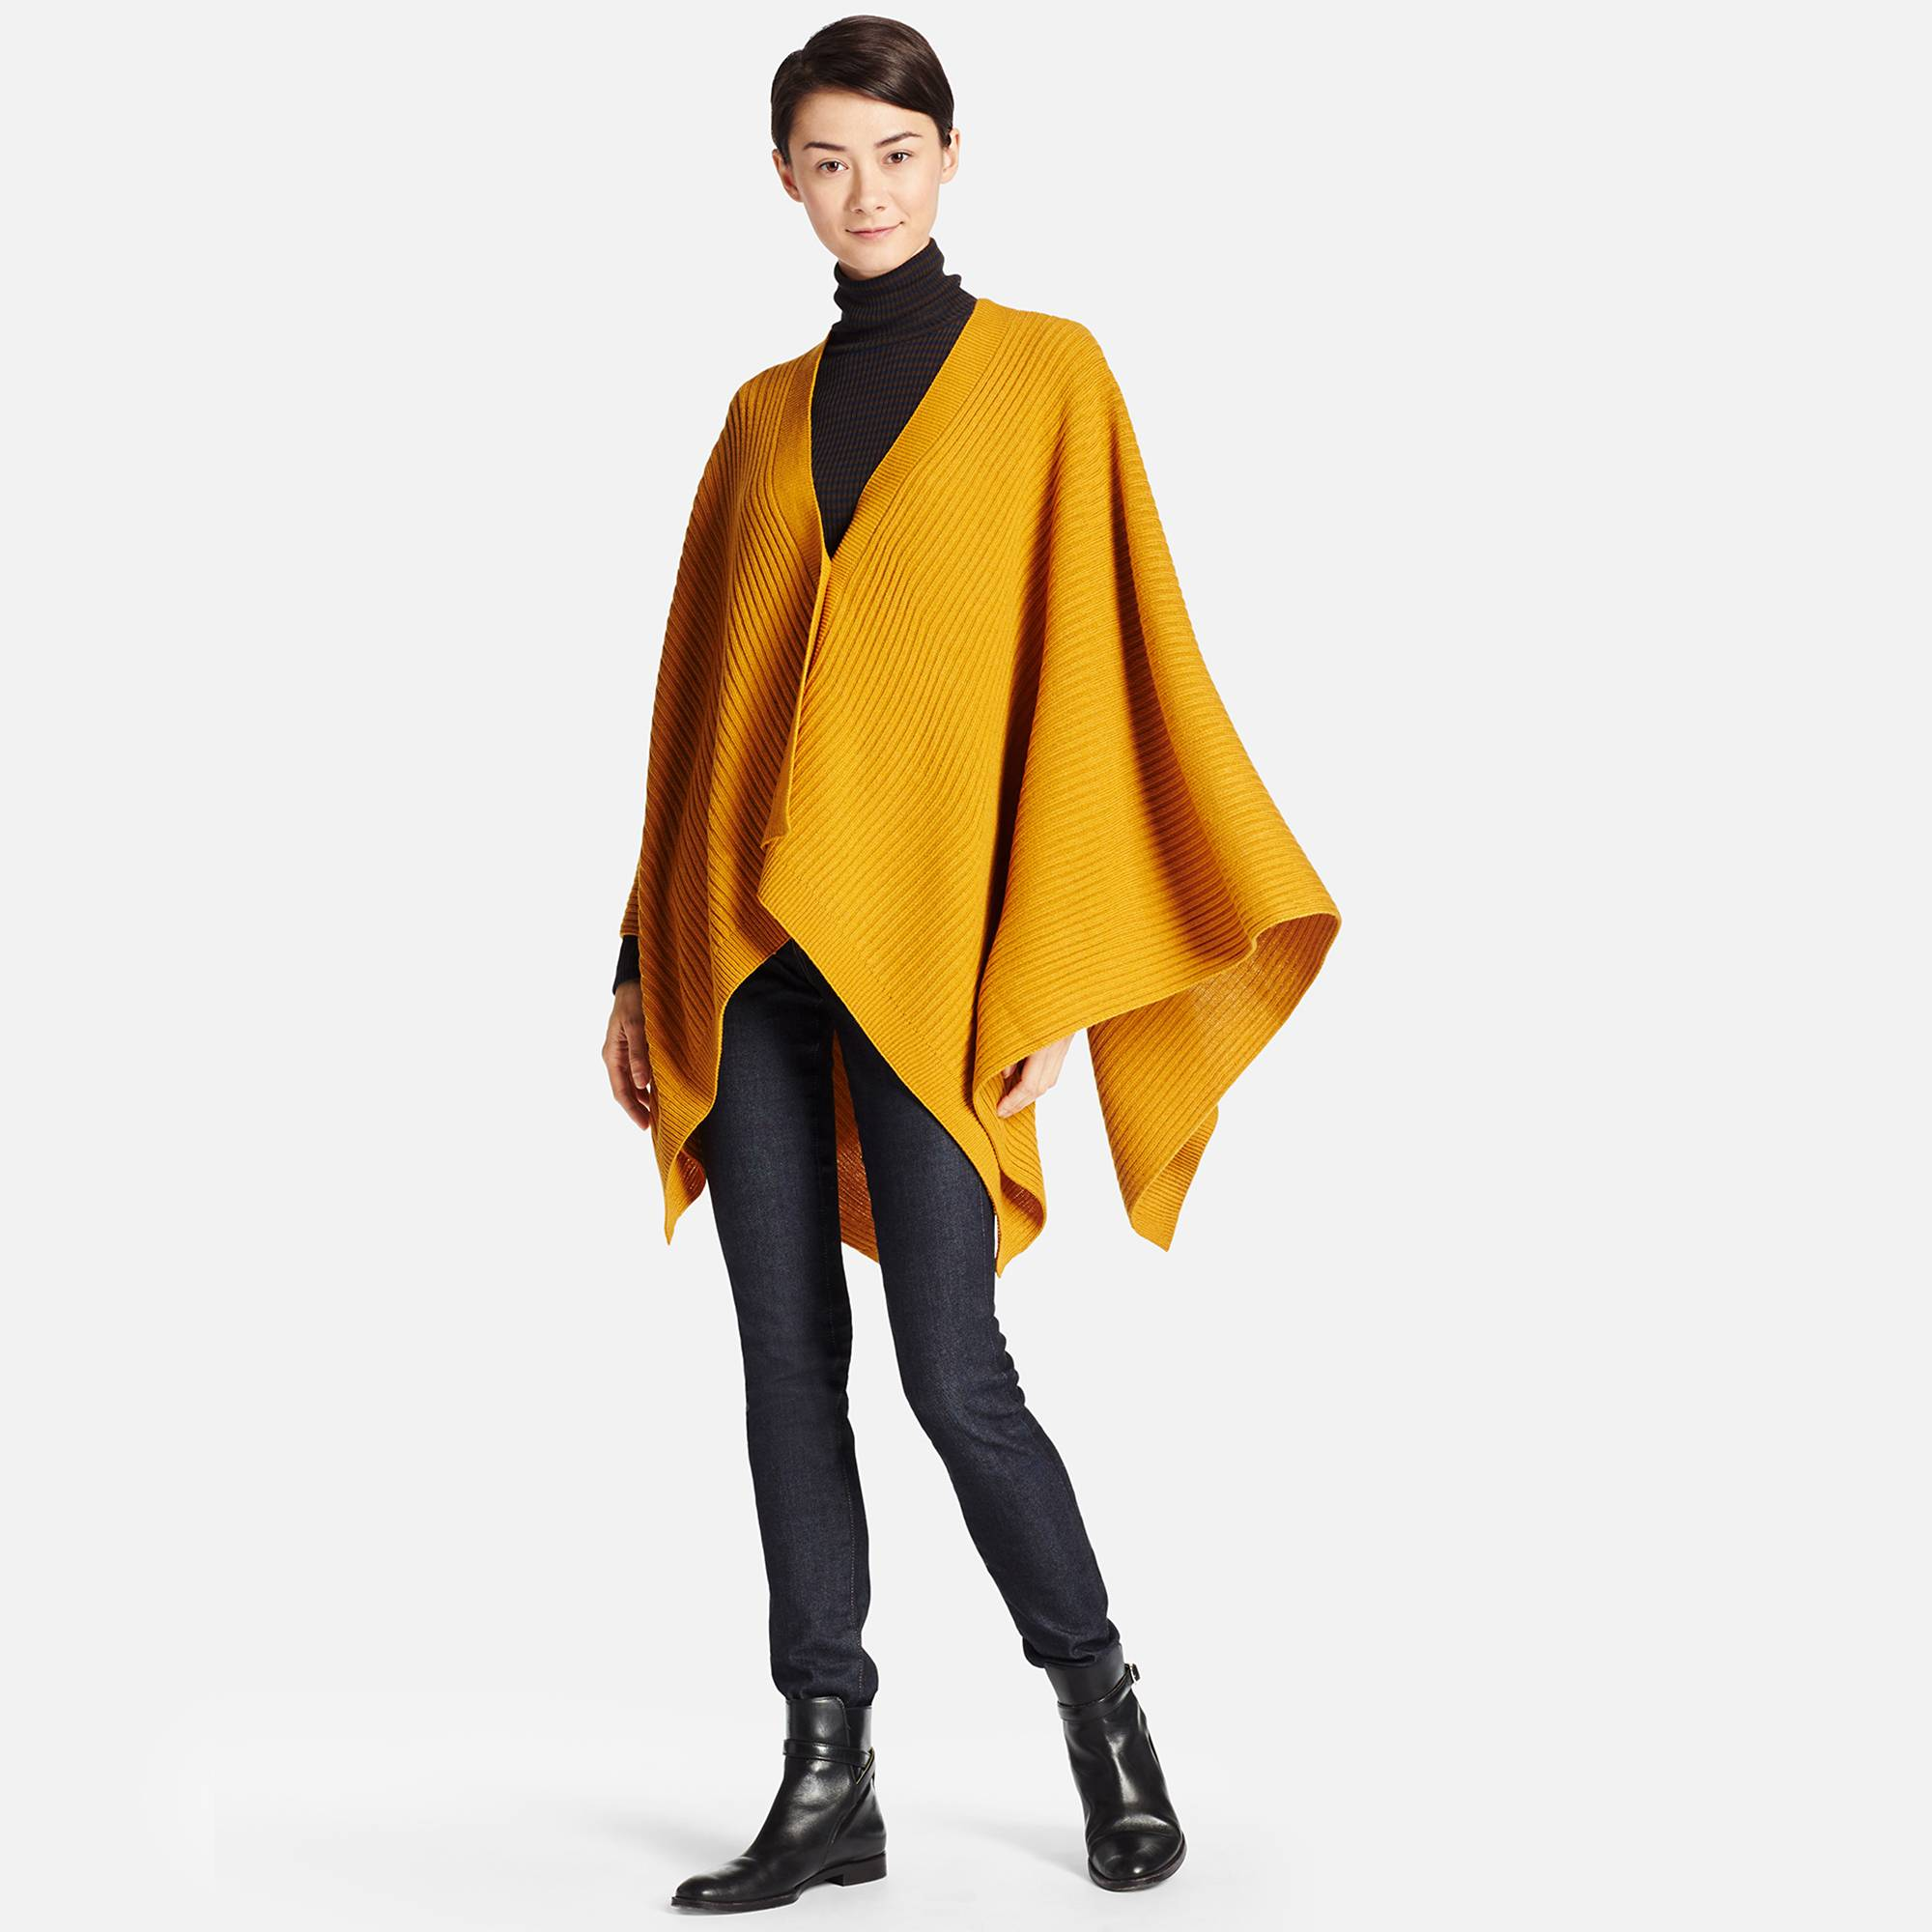 Uniqlo knit stole